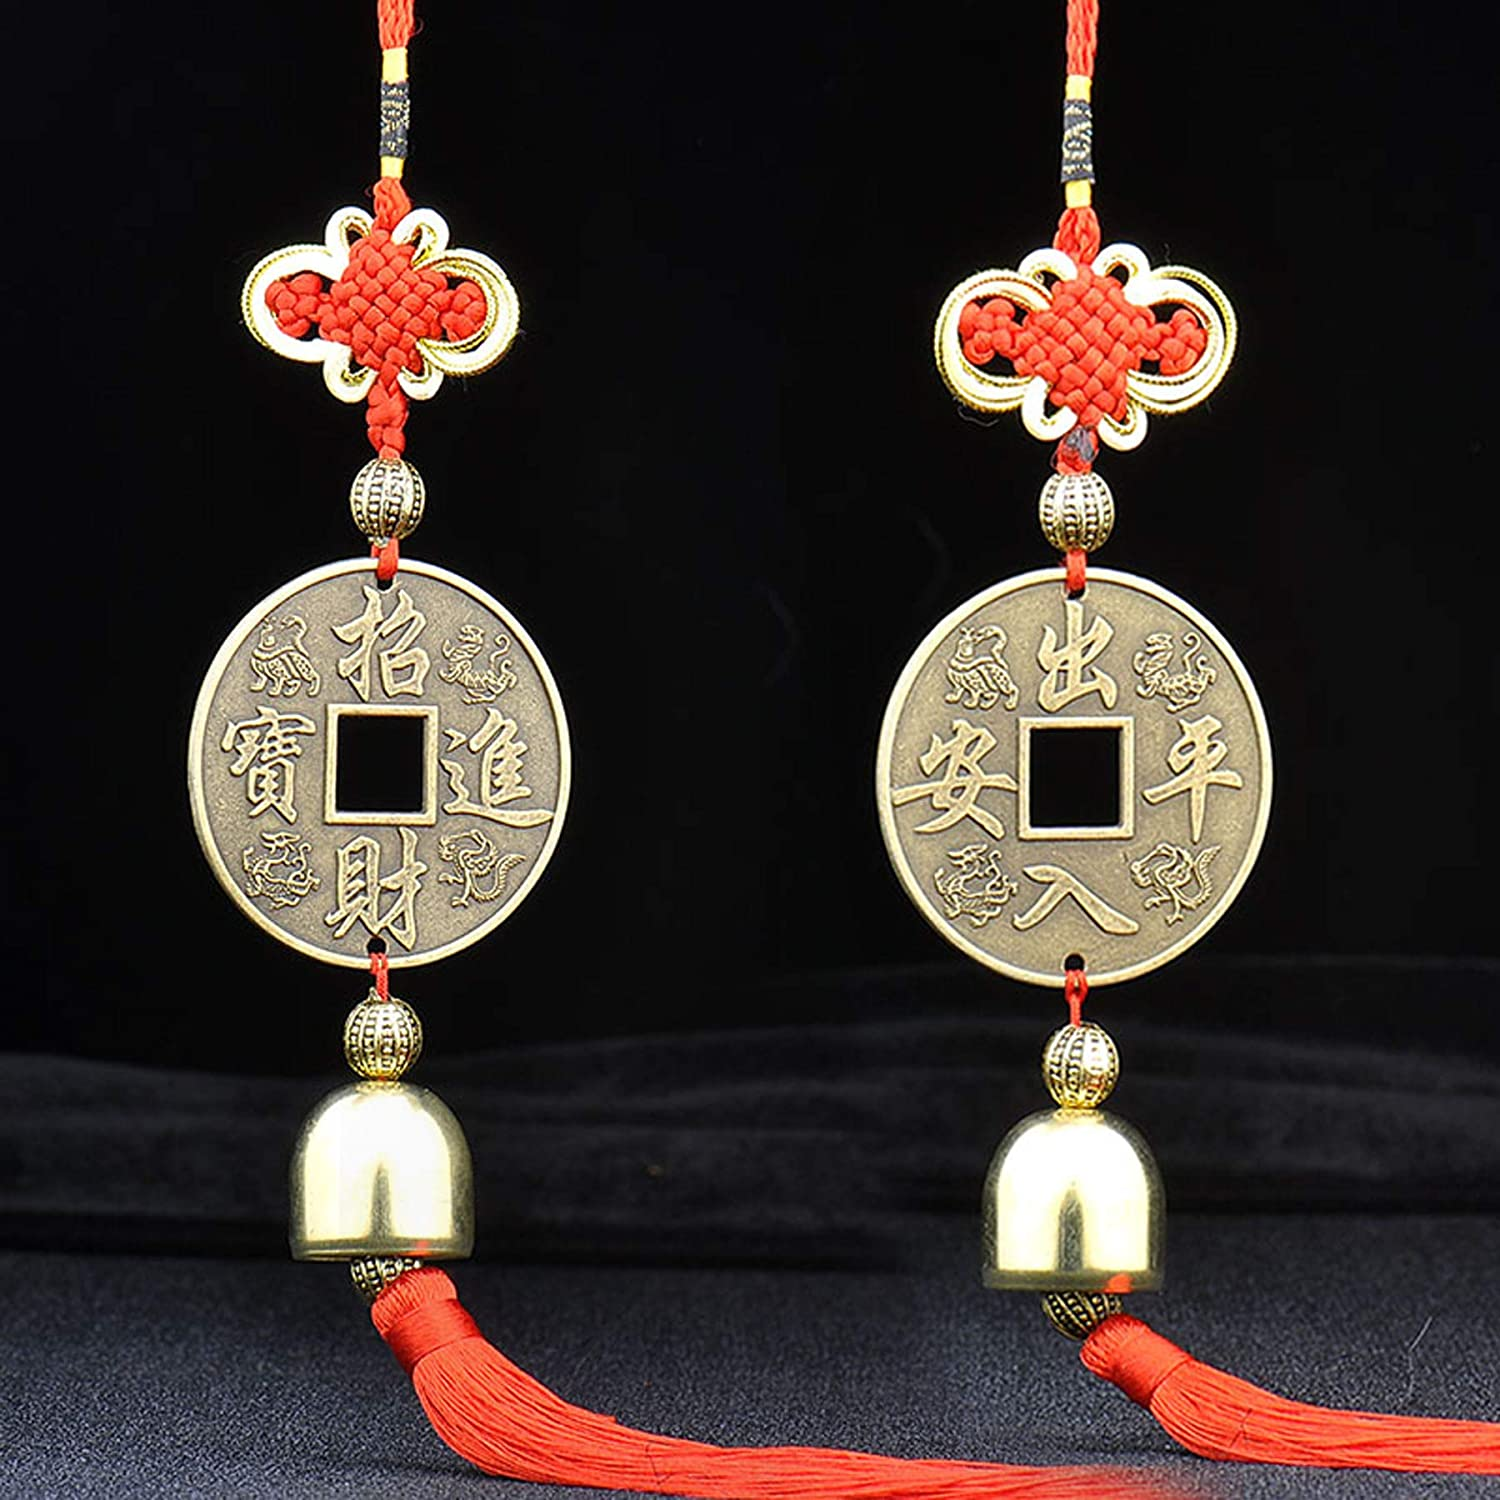 Chinese Feng Shui Coins Ornaments Chinese Knot Tassel Lucky Charm Pendants Home Protection Car Decor Pack of 2